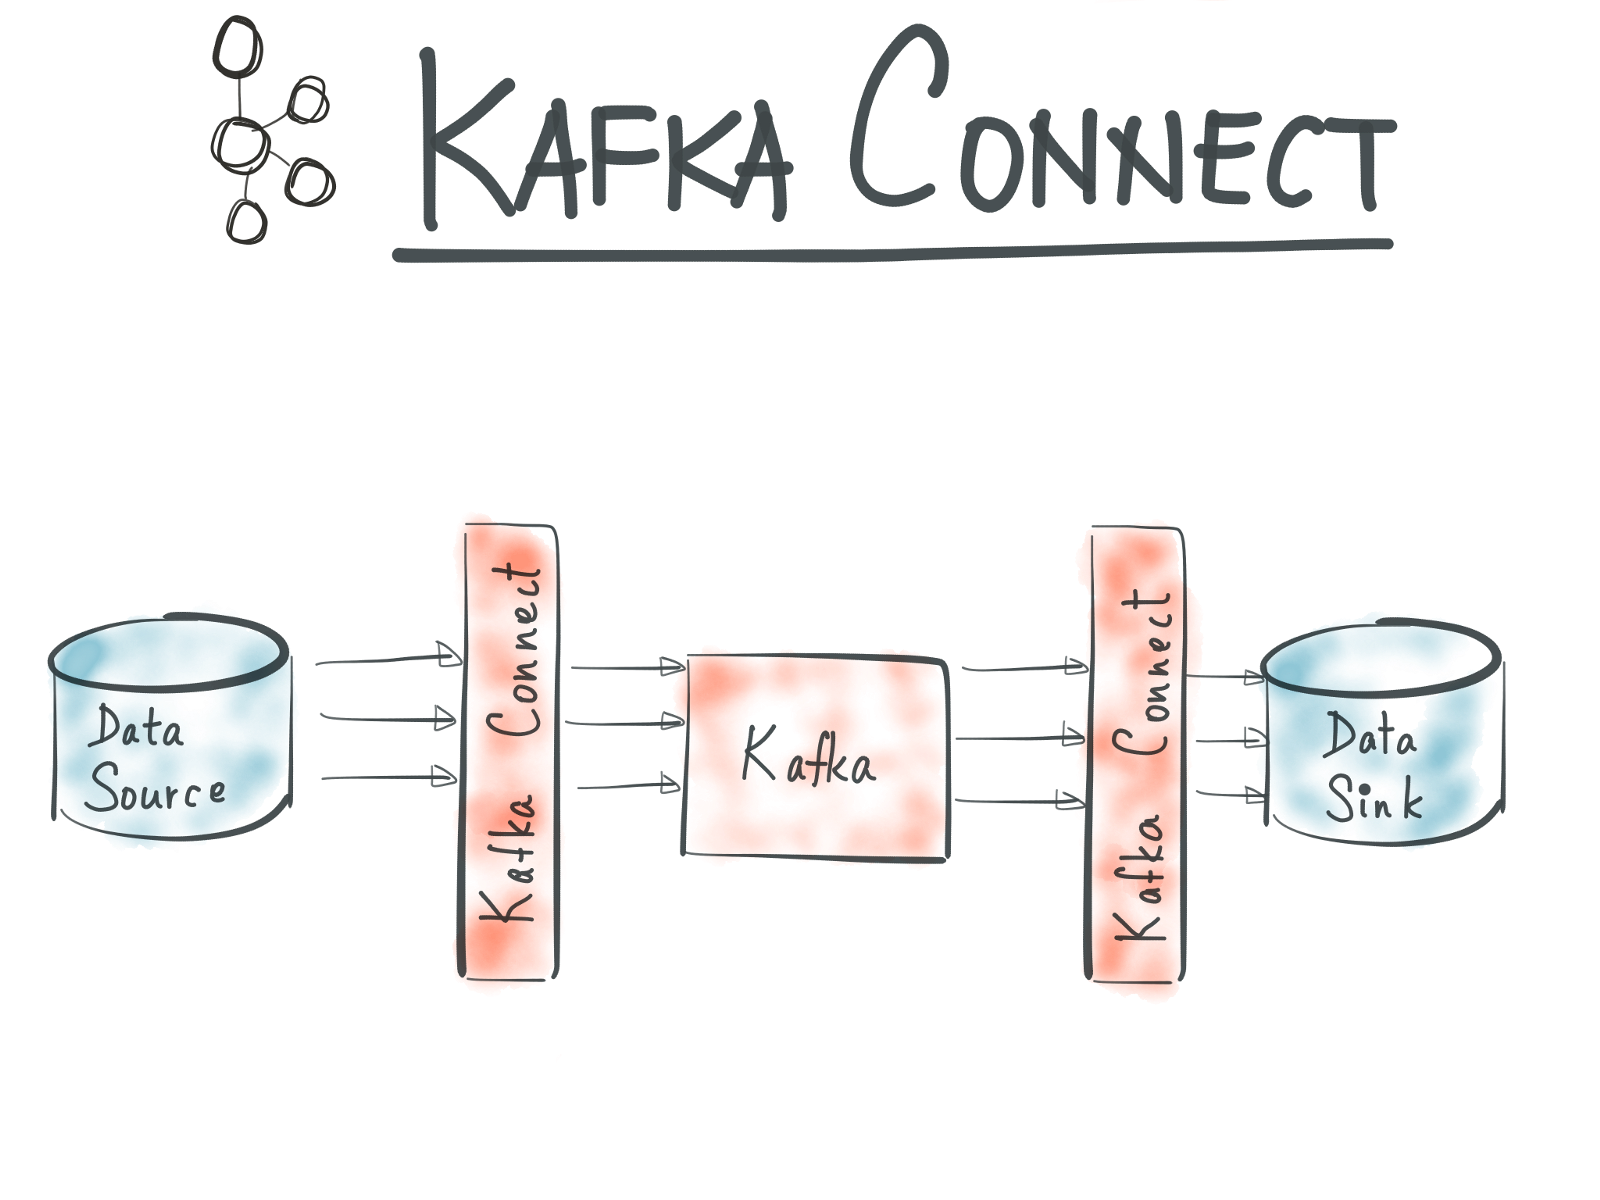 /writing-your-own-sink-connector-for-your-kafka-stack-fa7a7bc201ea feature image